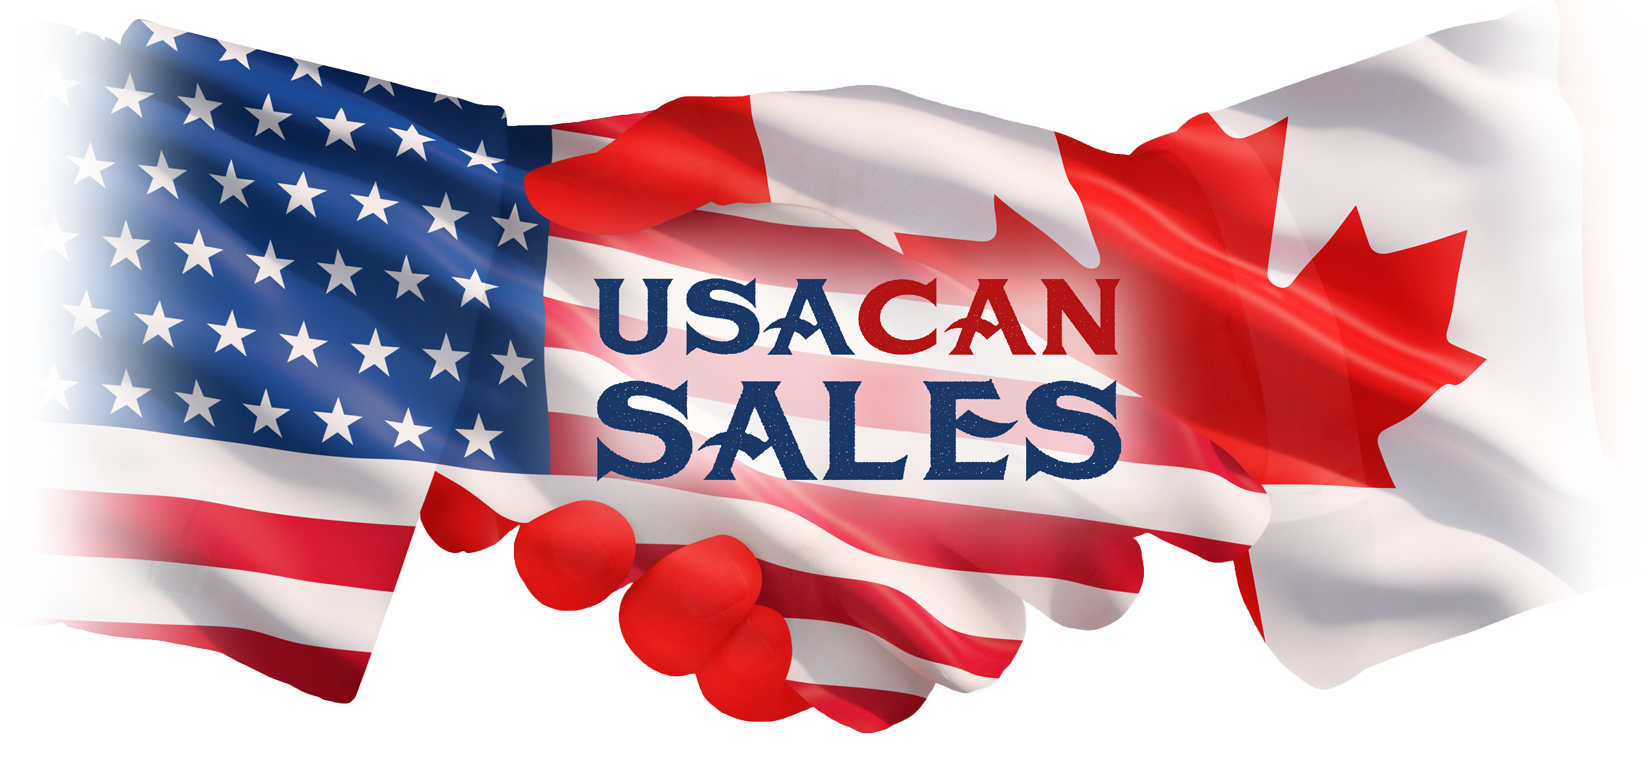 USACAN Sales